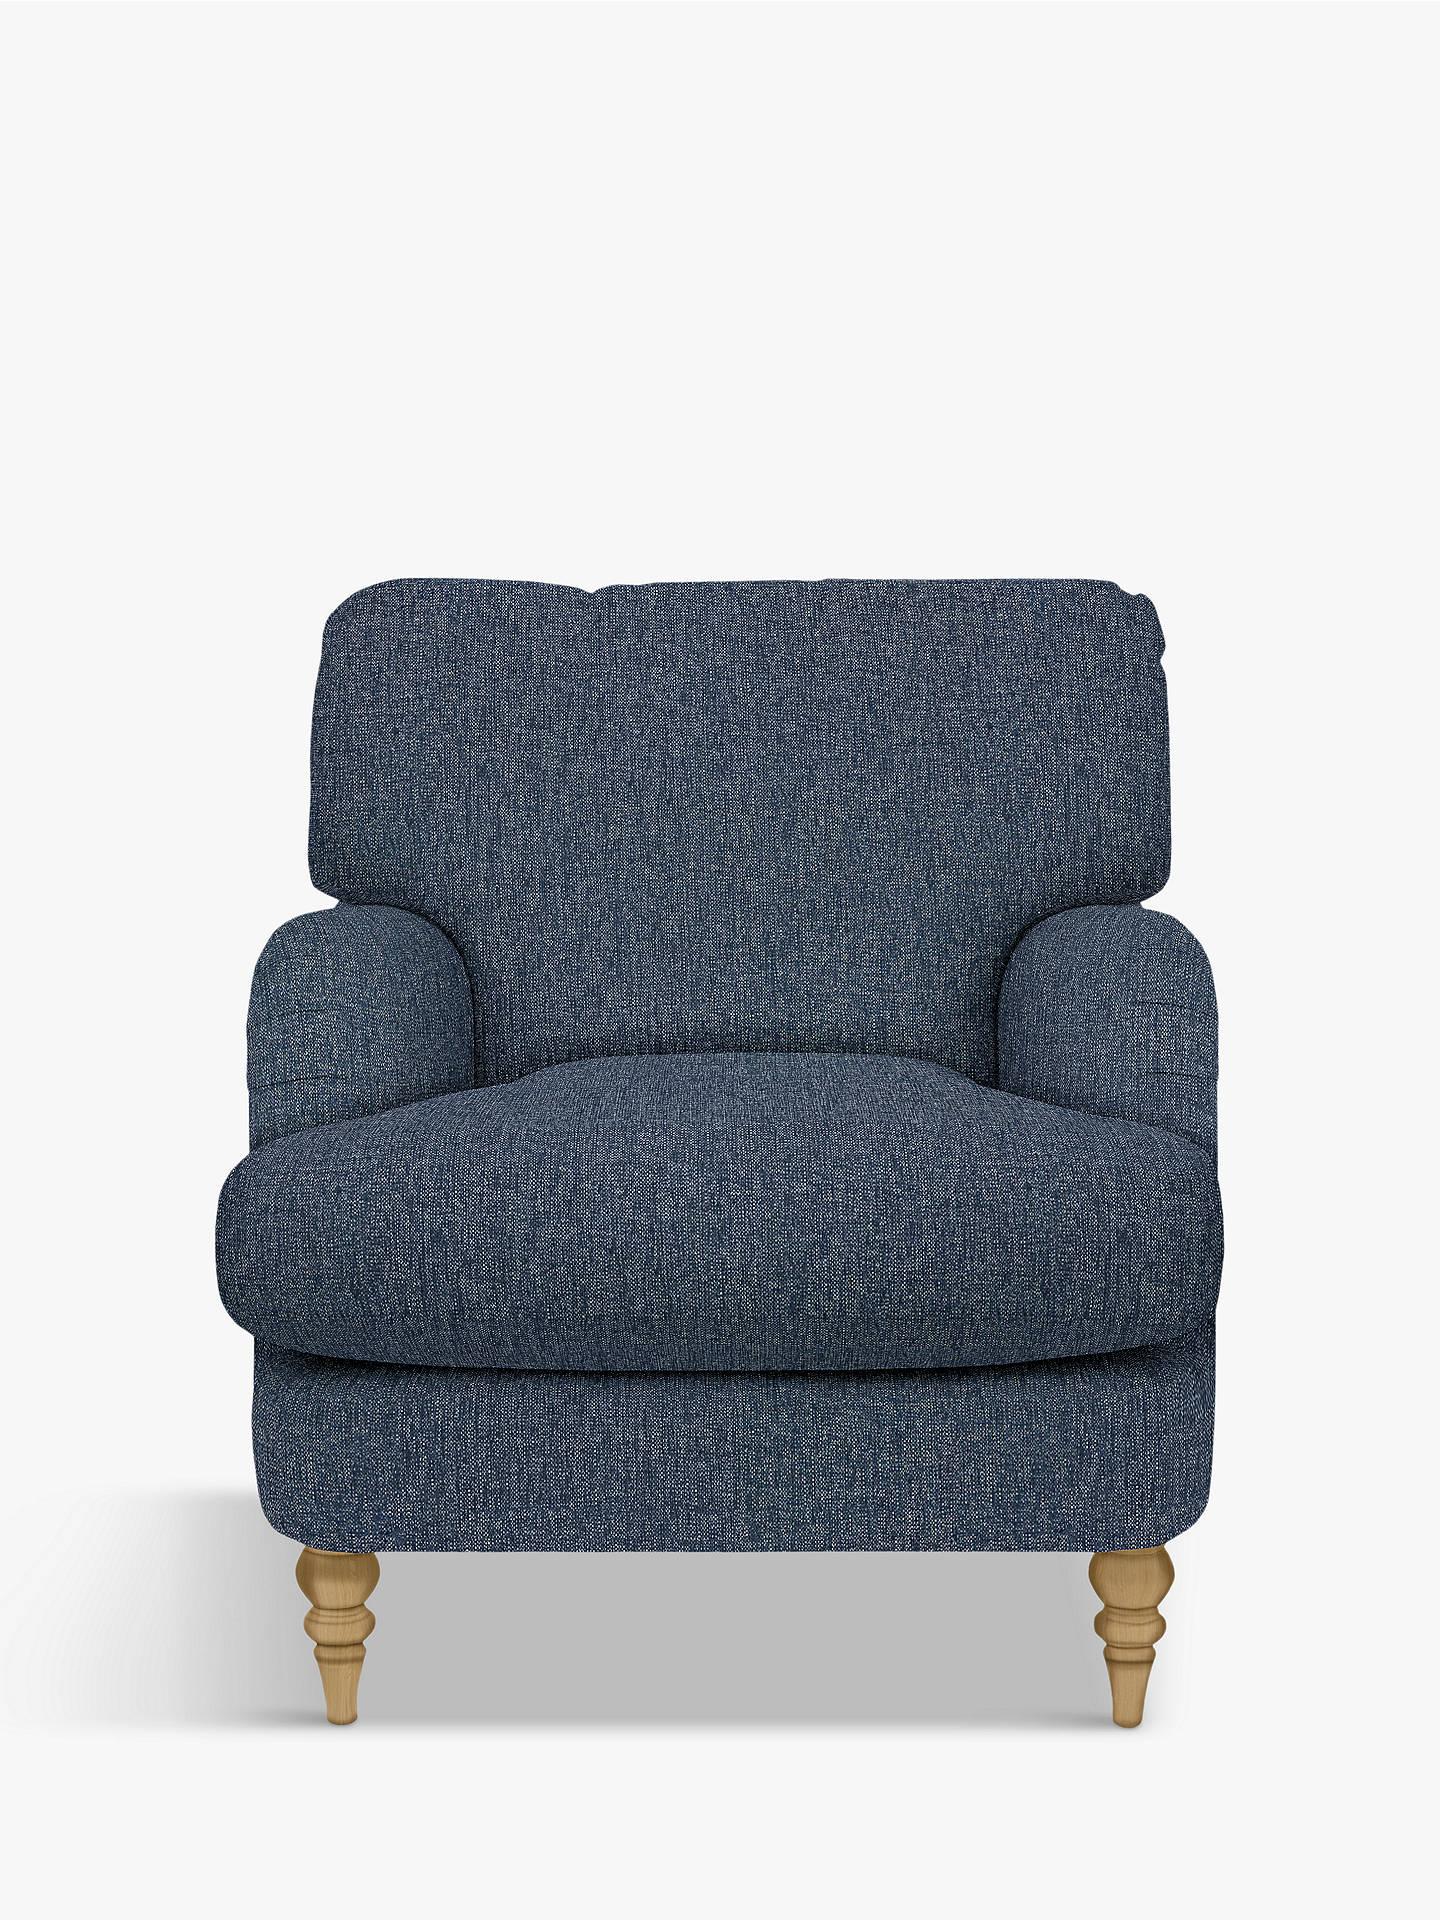 Buy John Lewis & Partners Otley Armchair, Light Leg, Catrin Navy Online at johnlewis.com